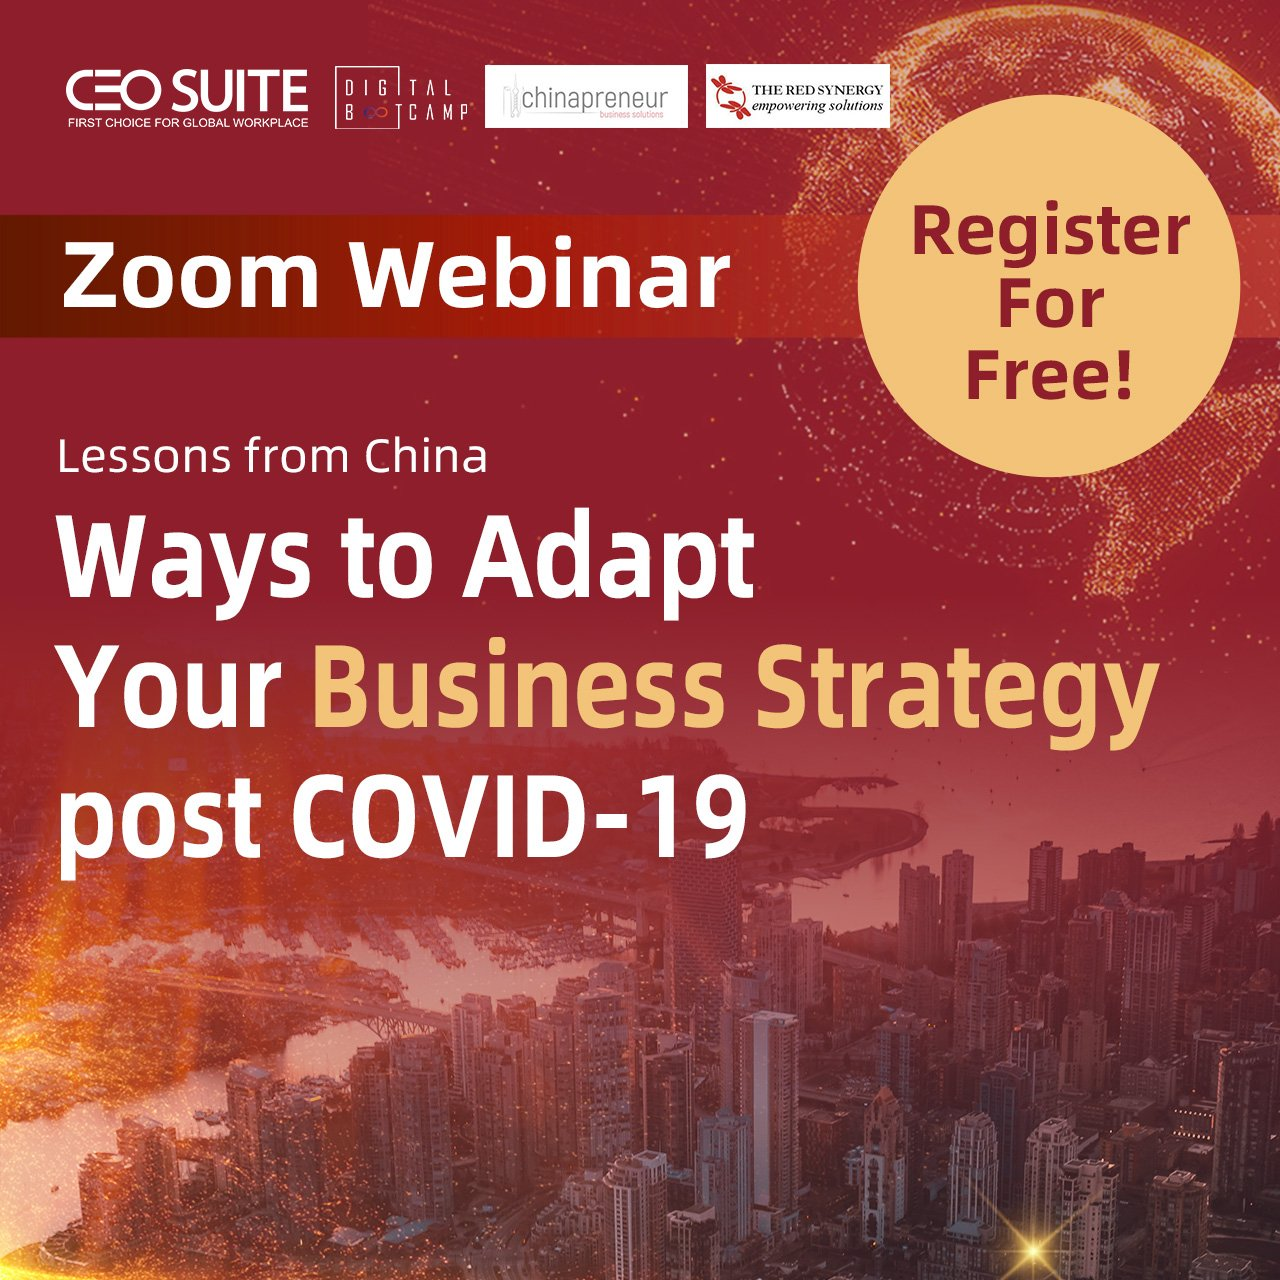 May 28th Webinar- Lessons from China : Ways to Adapt Your Business Strategy post COVID-19